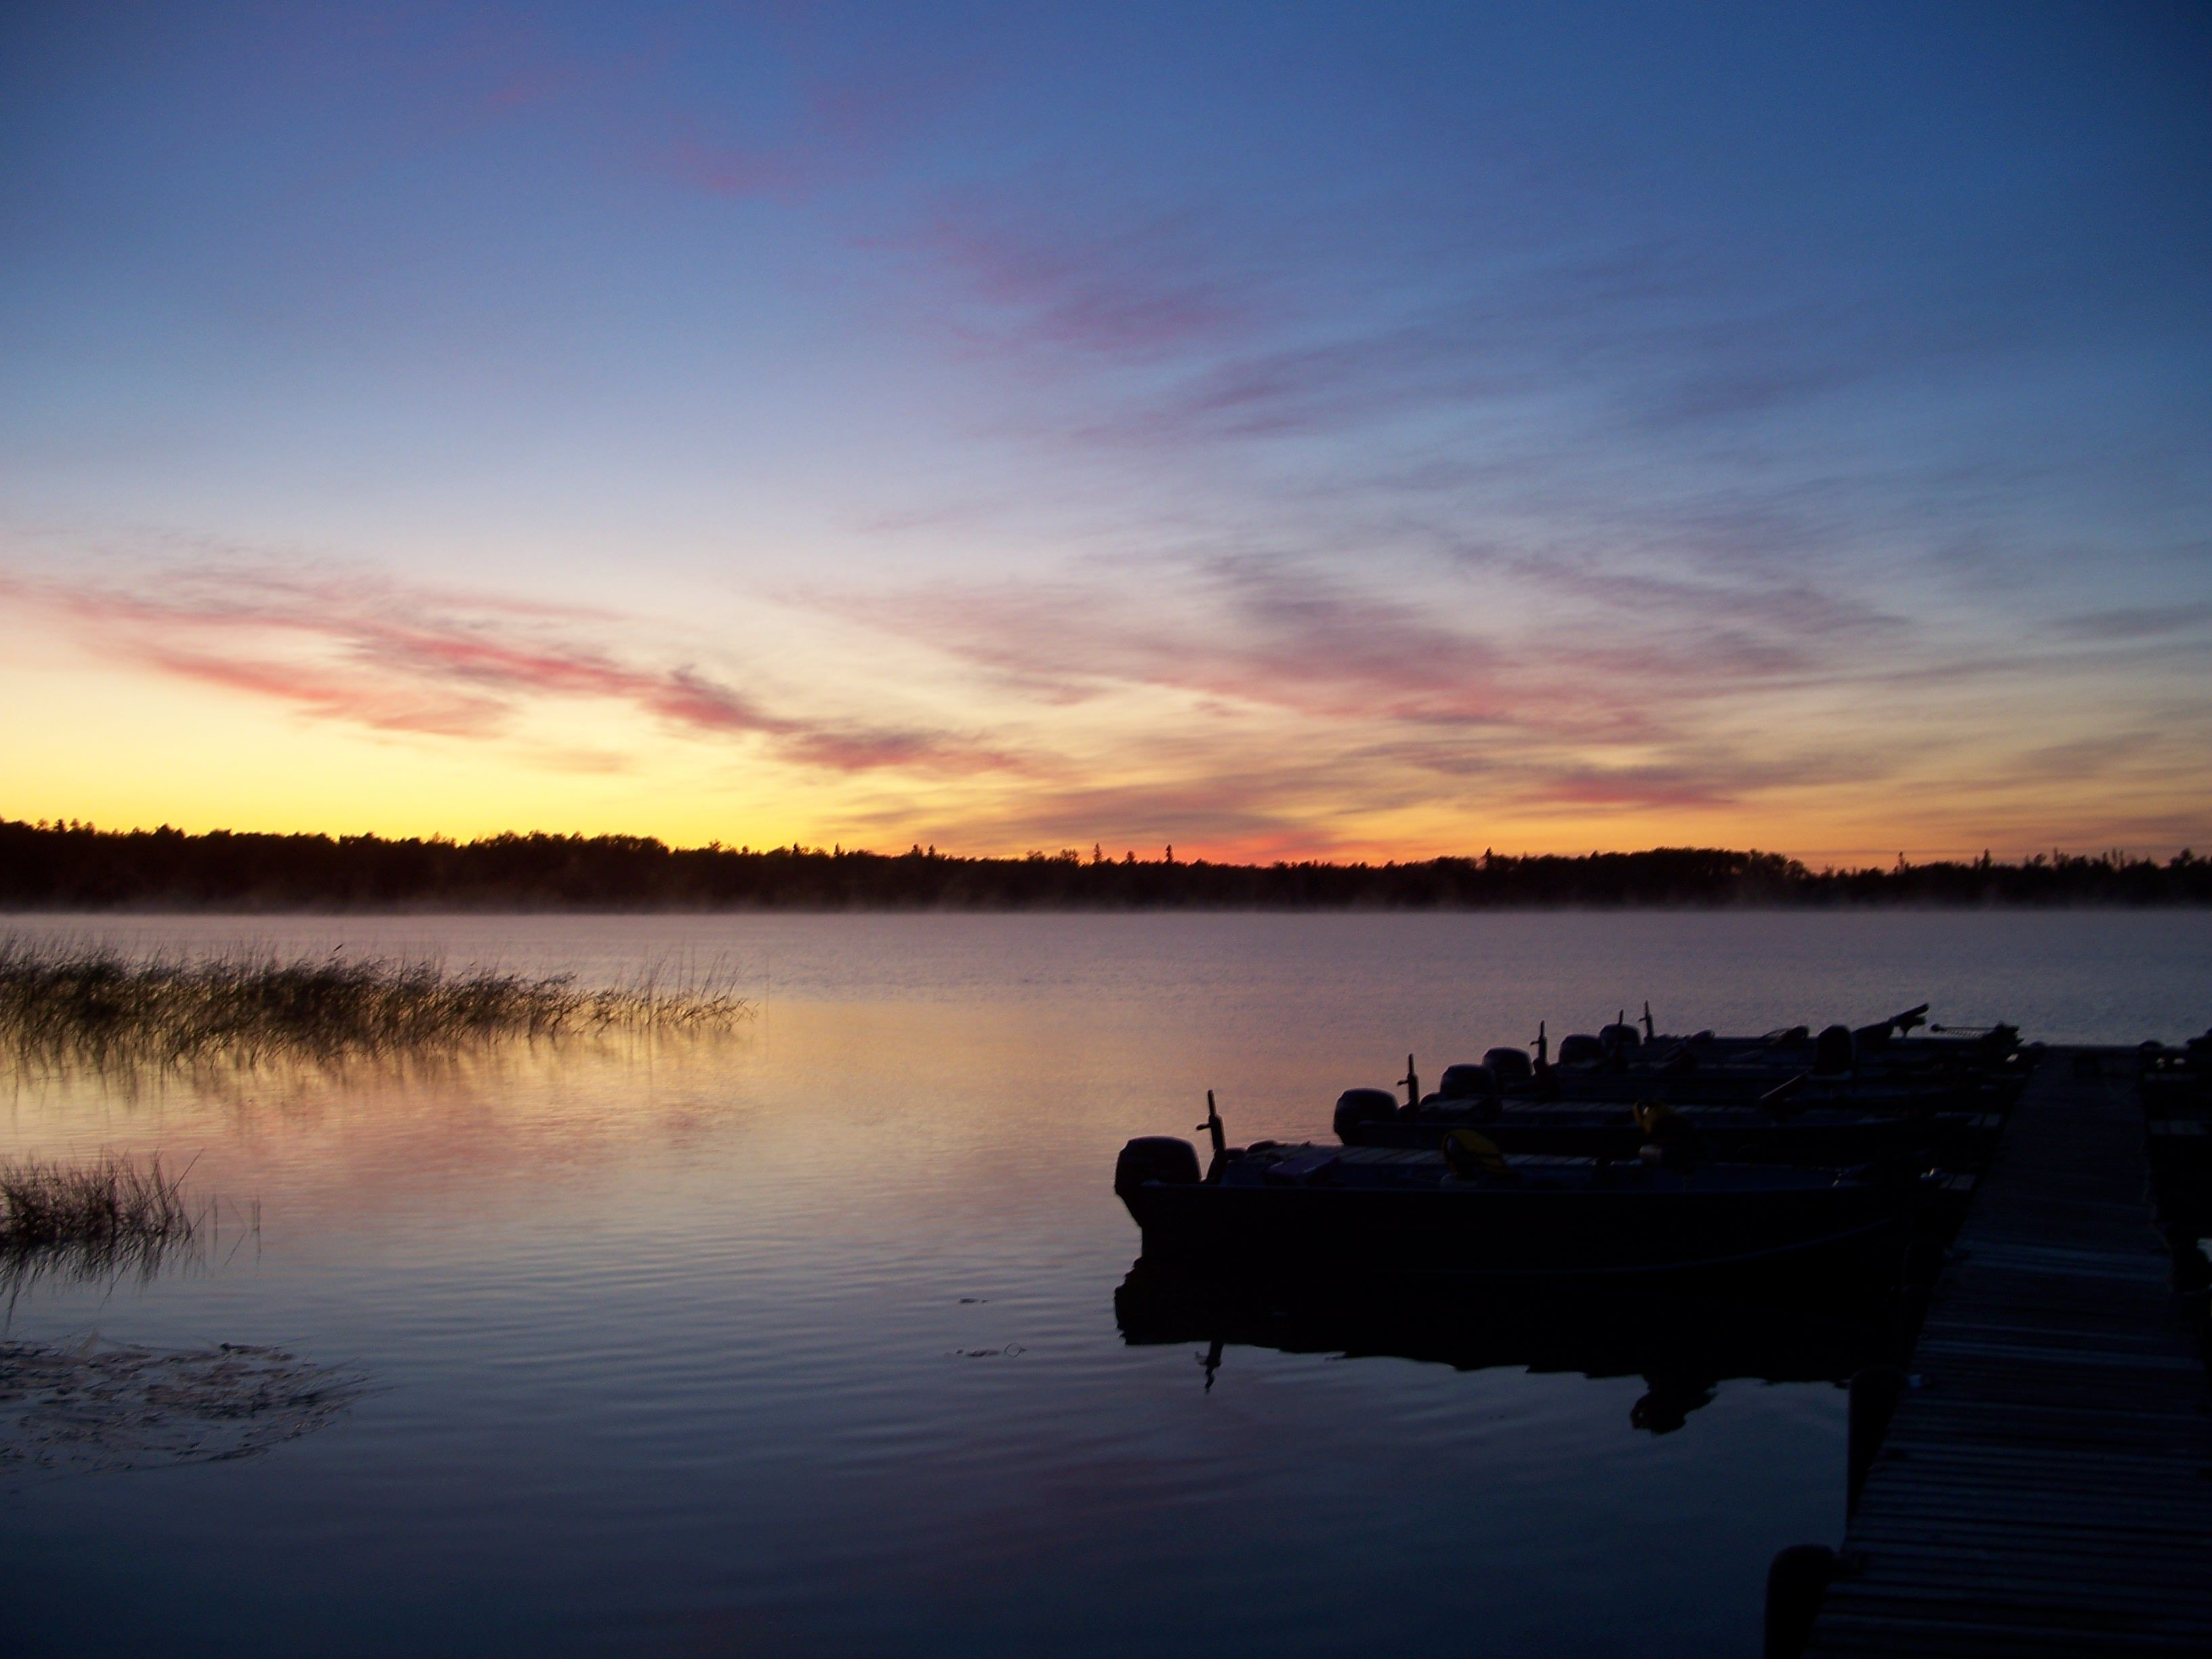 Eagle lake in ontario canada places i 39 ve been pinterest for Eagle lake texas fishing